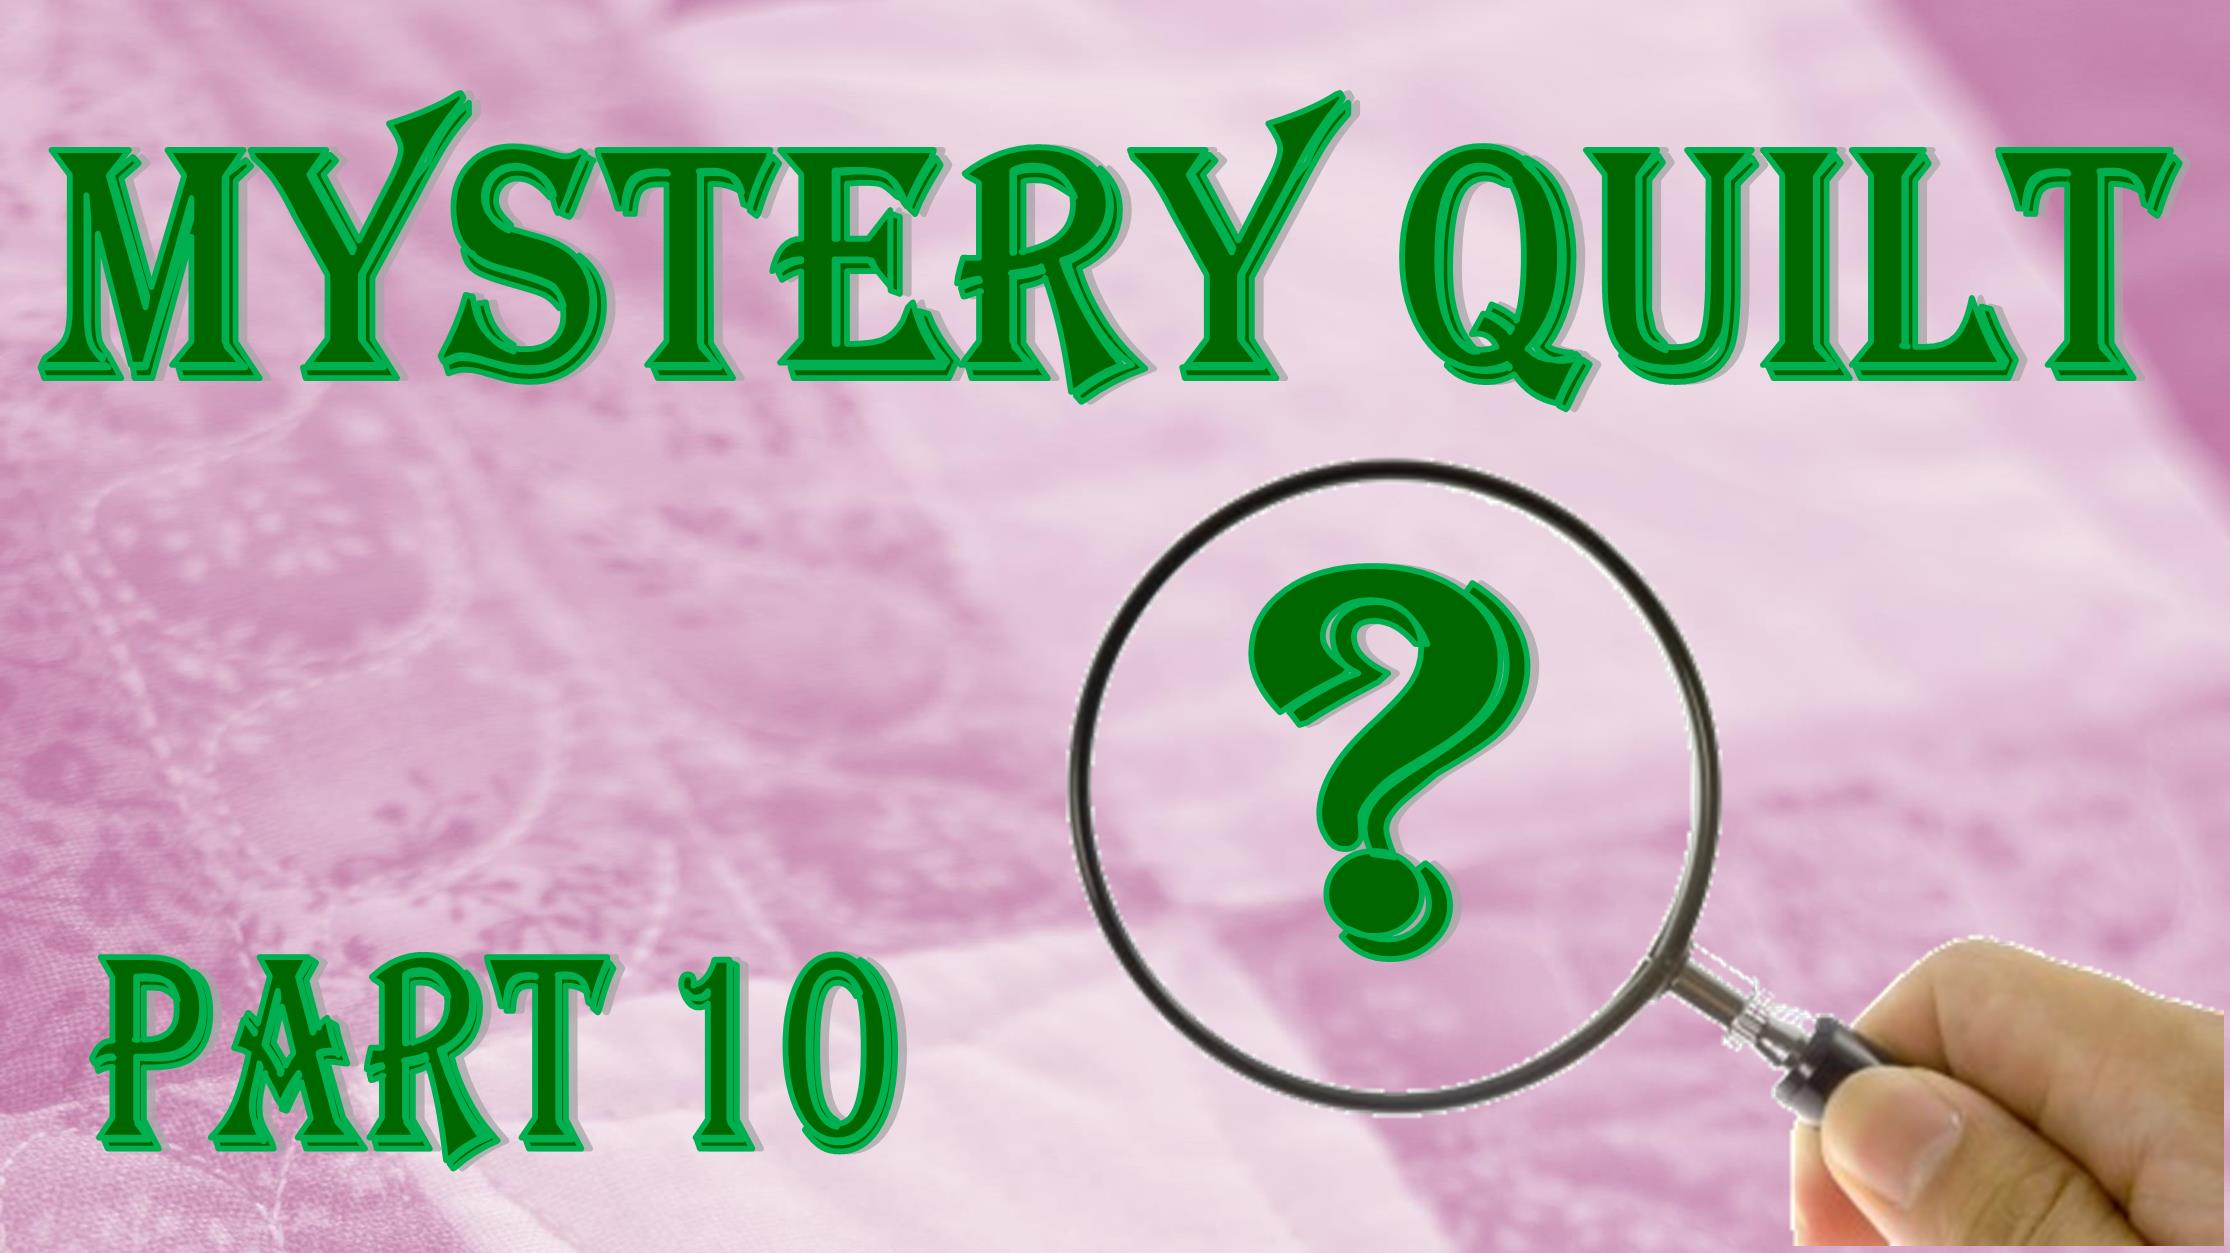 Mystery Quilt - Part 10